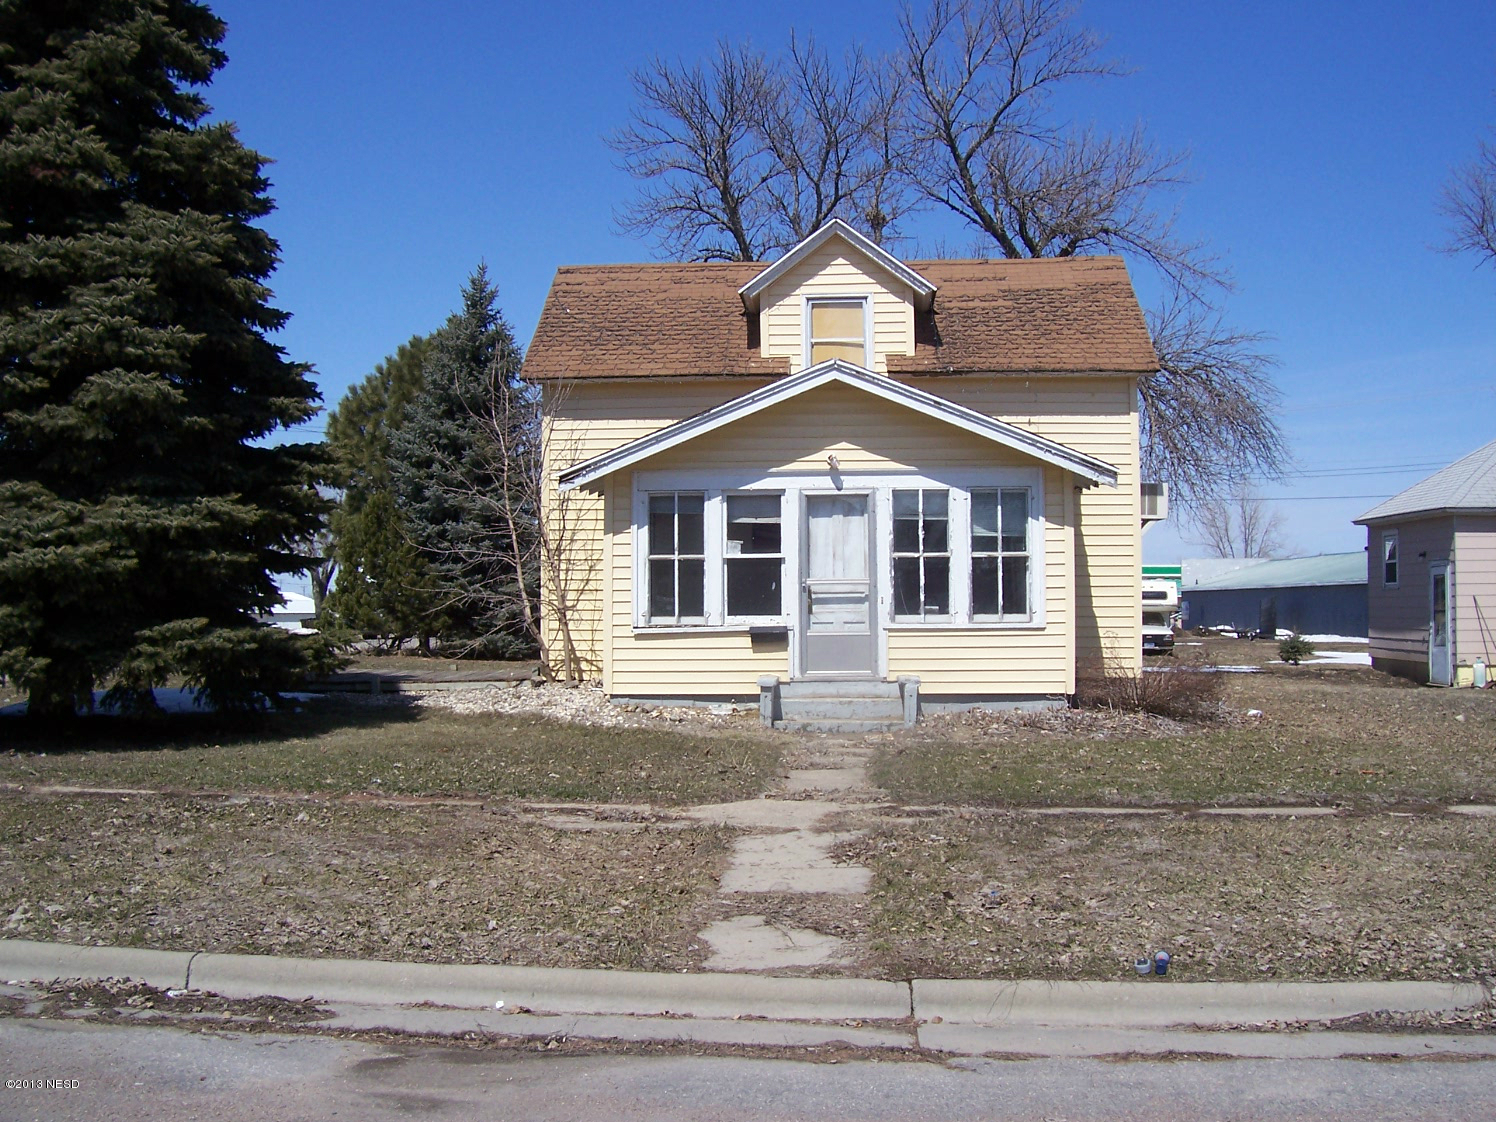 315 5TH AVE, Milbank, SD 57252